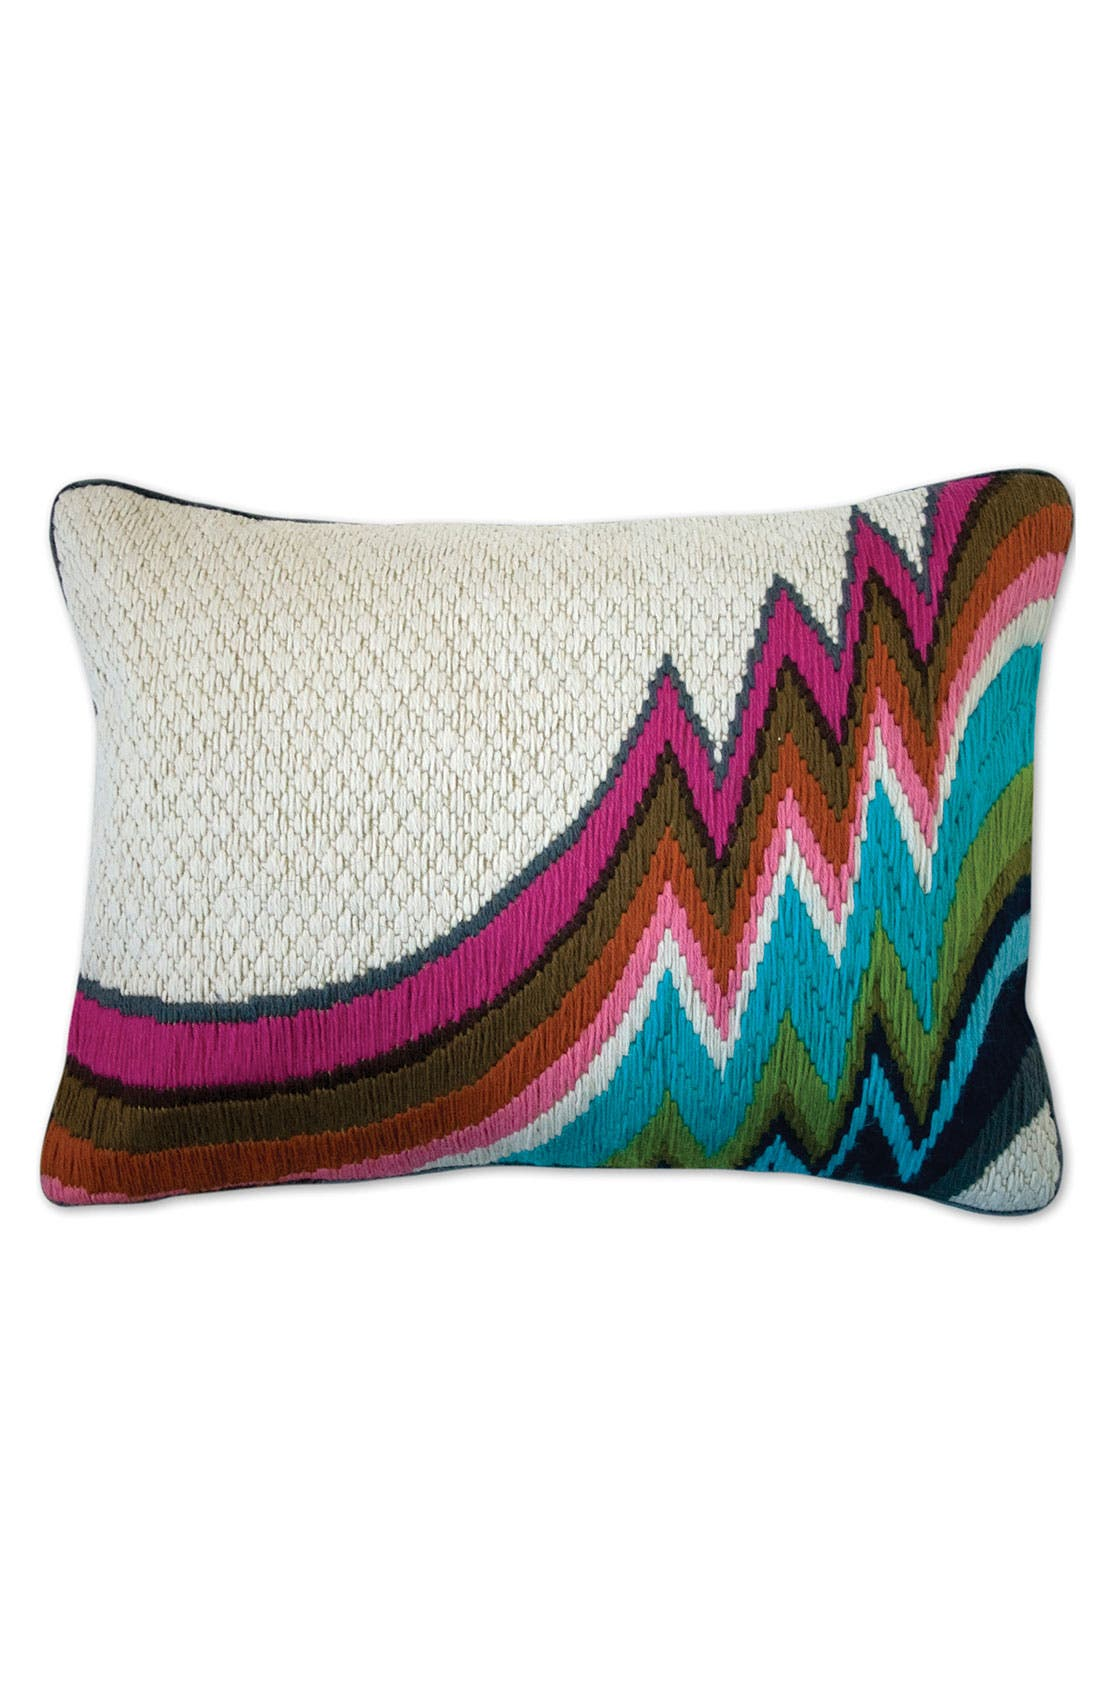 Alternate Image 1 Selected - Jonathan Adler 'Jamaica Lane Bargello' Pillow